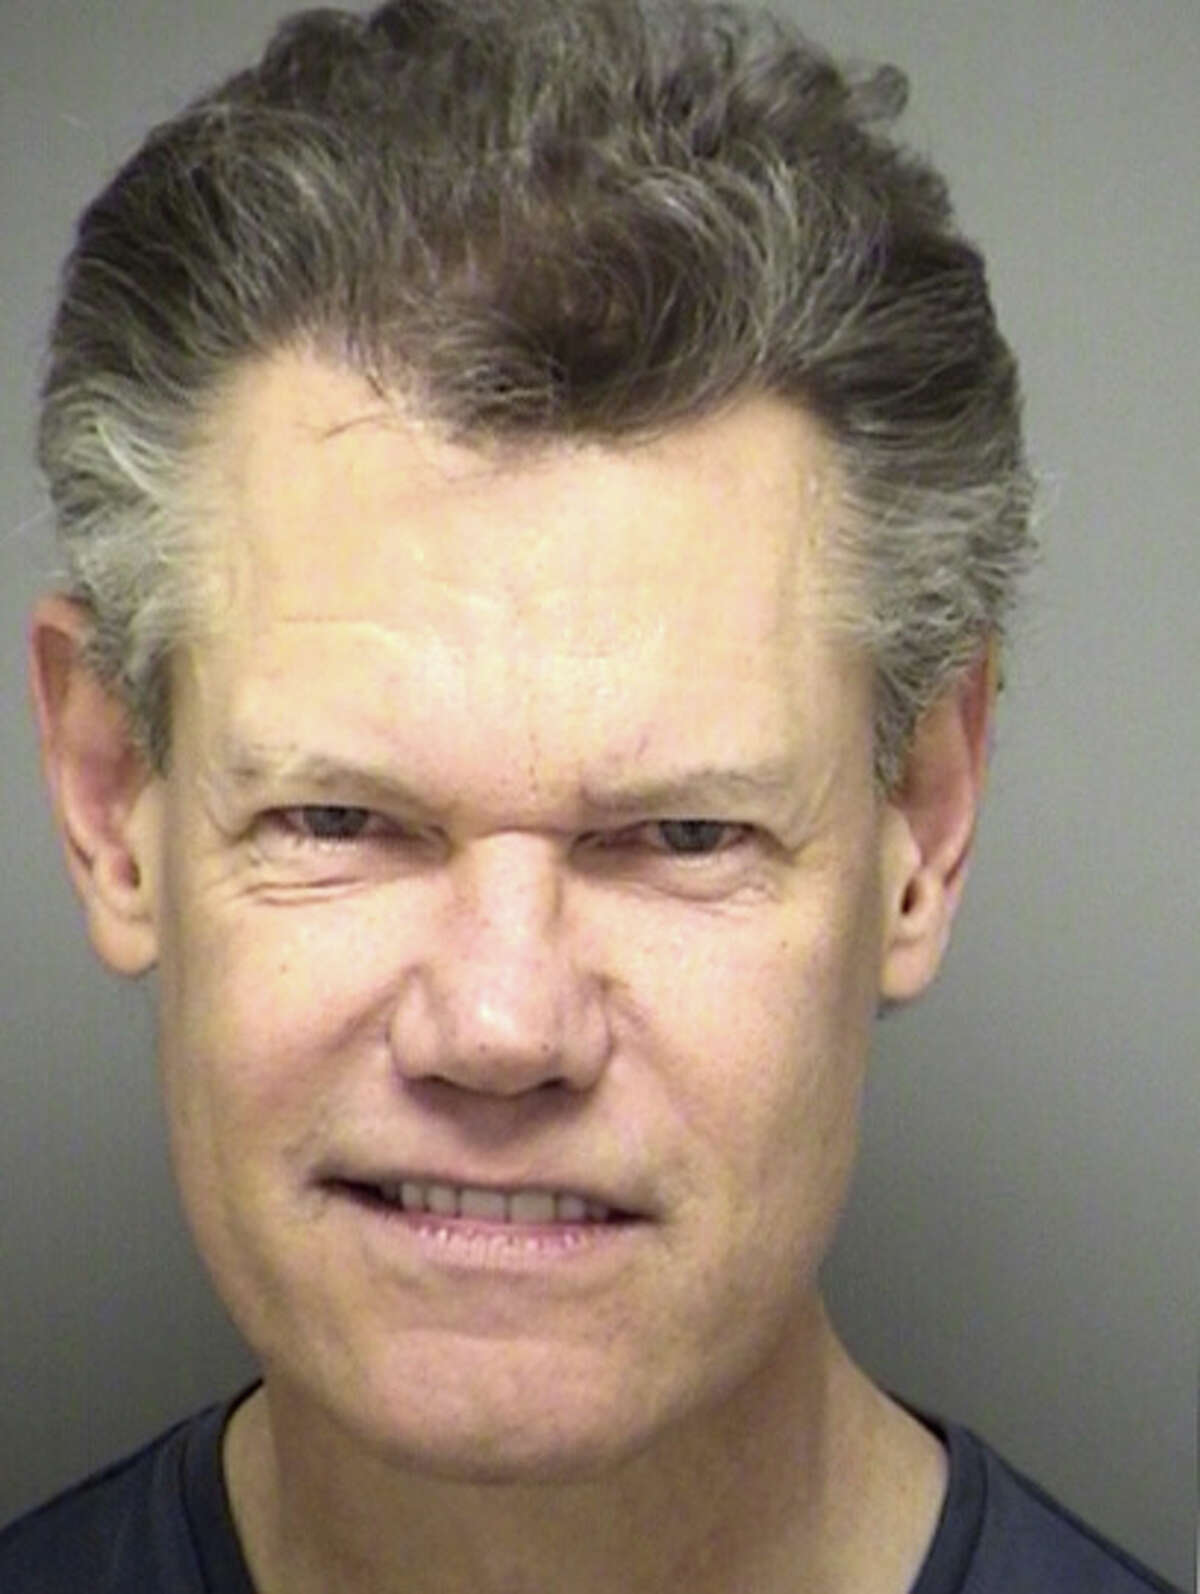 Randy Travis is seen in a booking photo in 2012 in Denton. Travis was arrested in Sanger on allegations of public intoxication, was cited and later released. (Denton County Sheriff's Office)